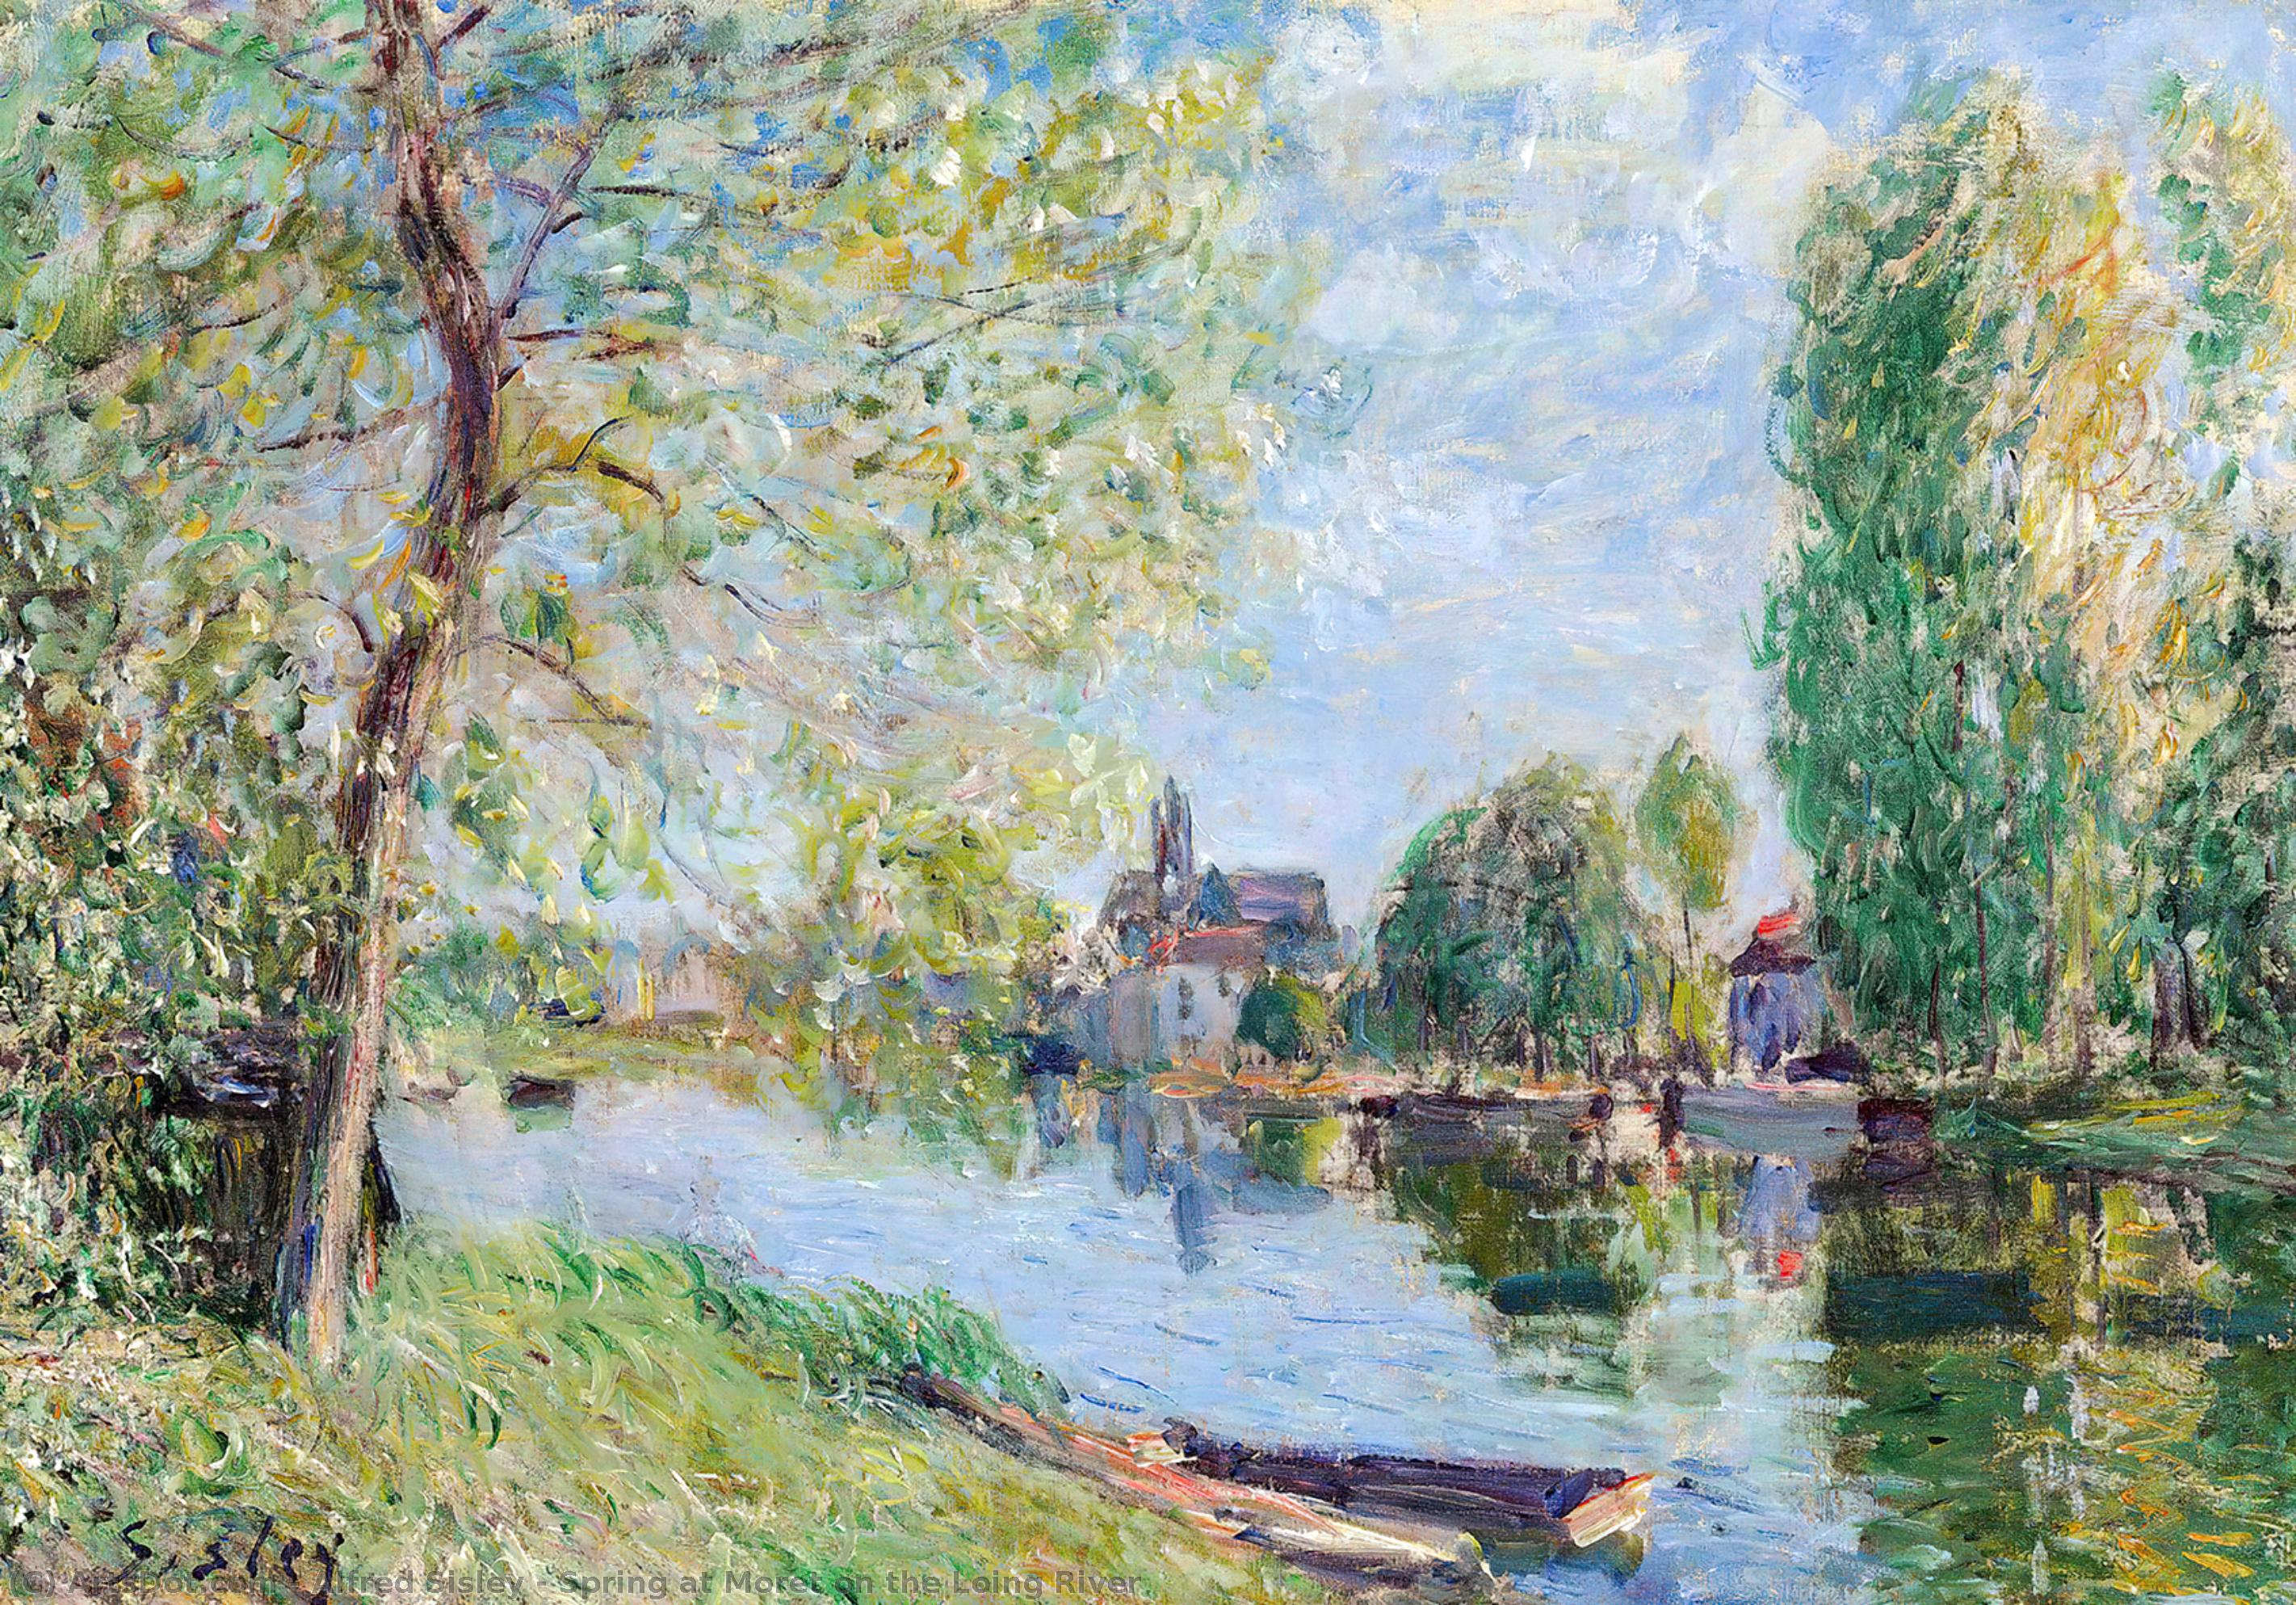 Wikioo.org - The Encyclopedia of Fine Arts - Painting, Artwork by Alfred Sisley - Spring at Moret on the Loing River